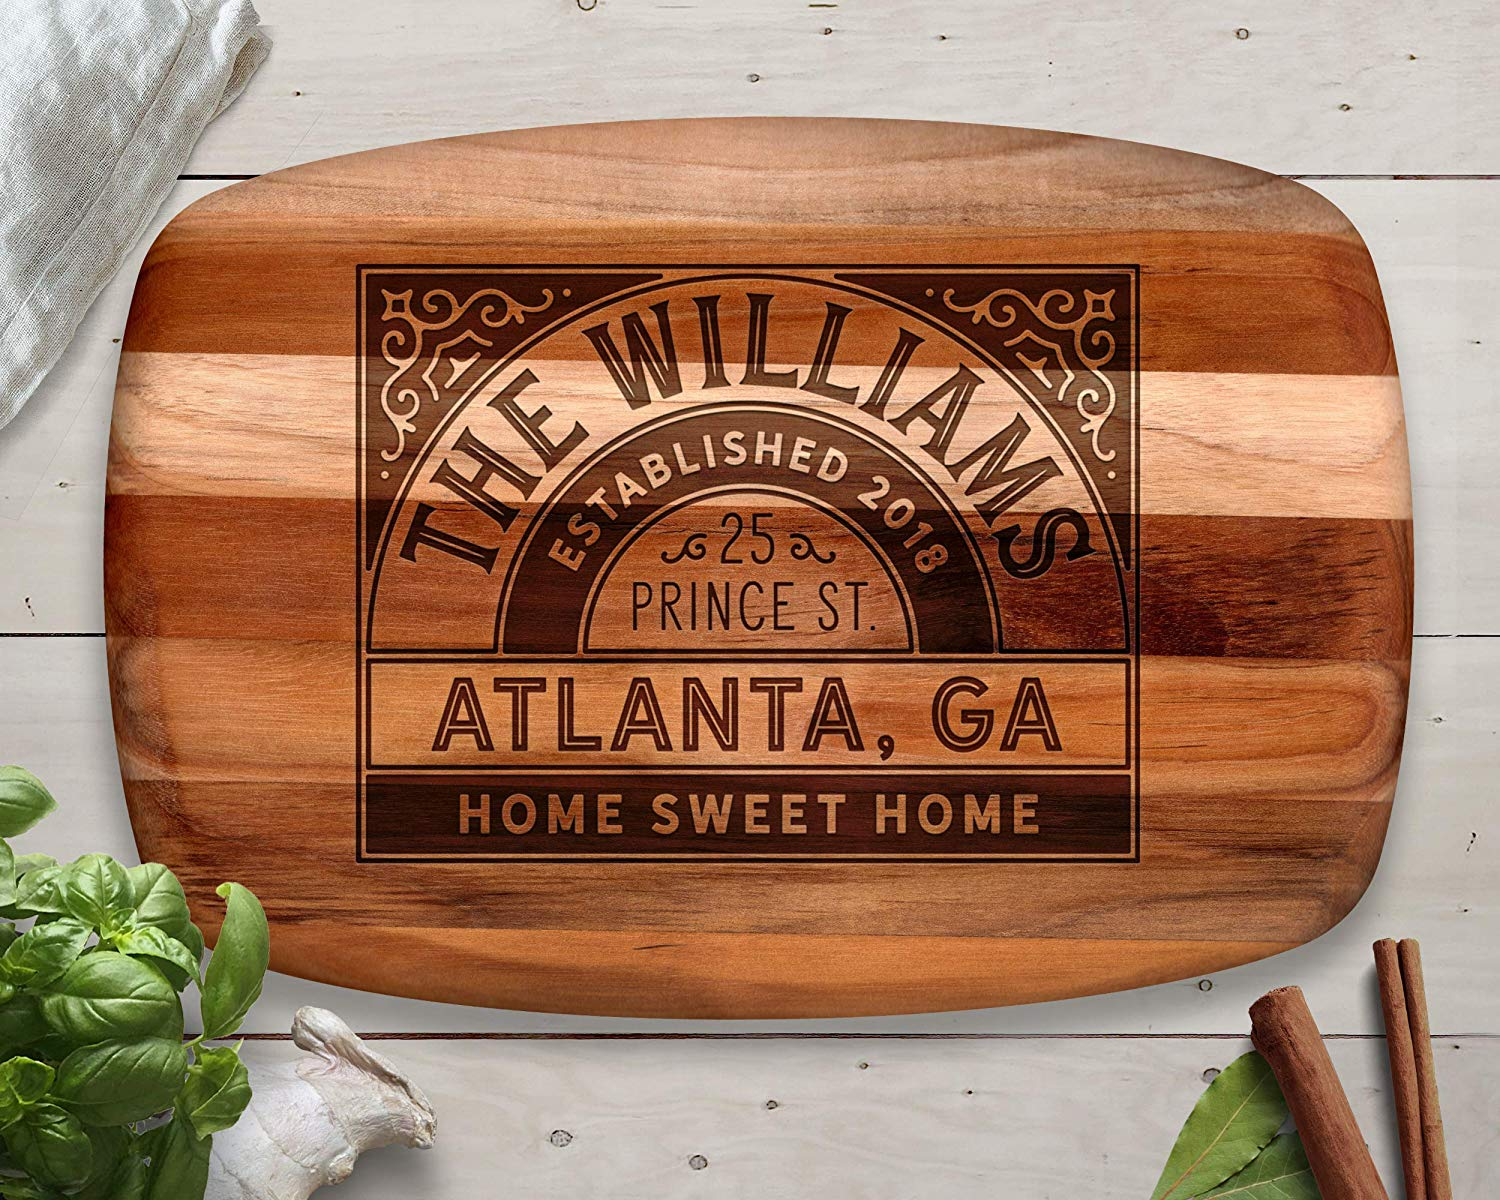 Cutting Board, Teak, Custom Cutting Board, Personalized Cutting Board, Chopping Block, Family Gift, Family Name Sign, Christmas Gift Ideas, Christmas 2018, Personalized Christmas Gift